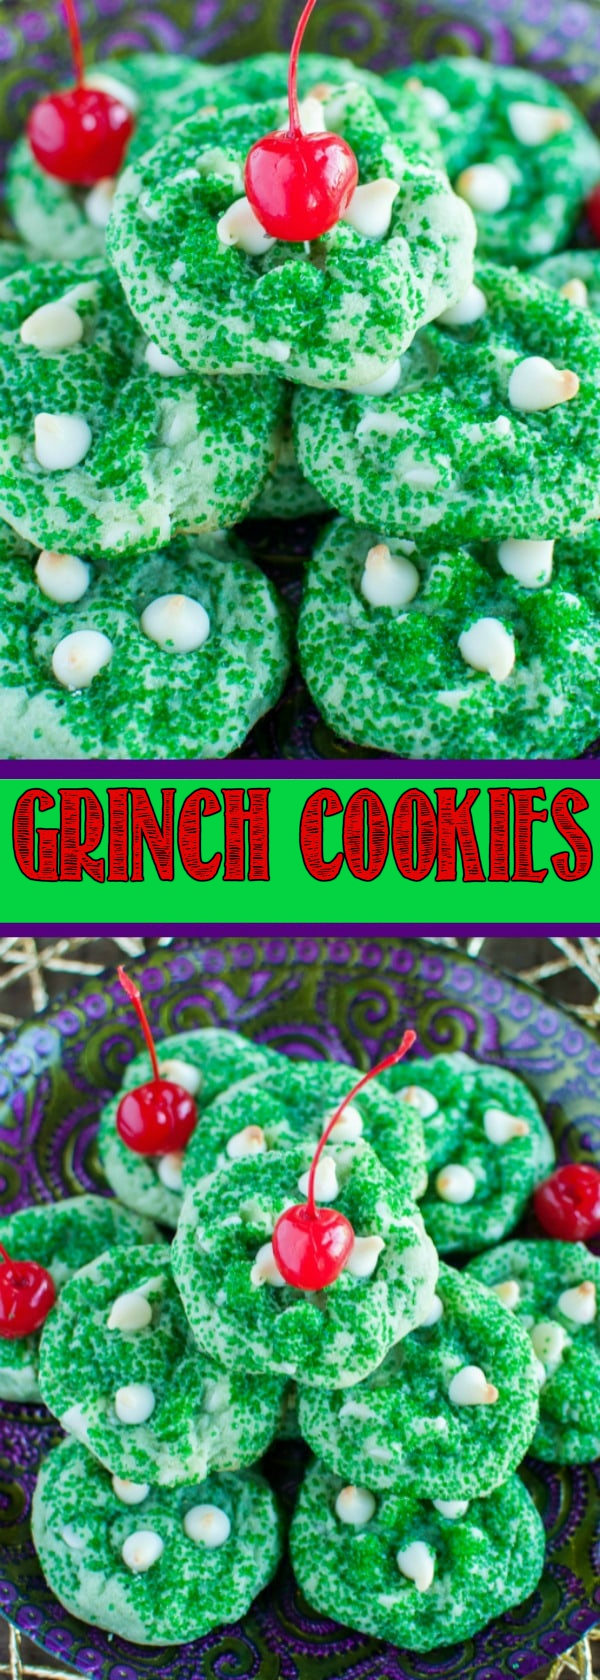 Grinch Cookies taste just like the popular Shamrock Shake! These cool, minty, soft, and chewy cookies are perfect for Christmas cookie exchanges!